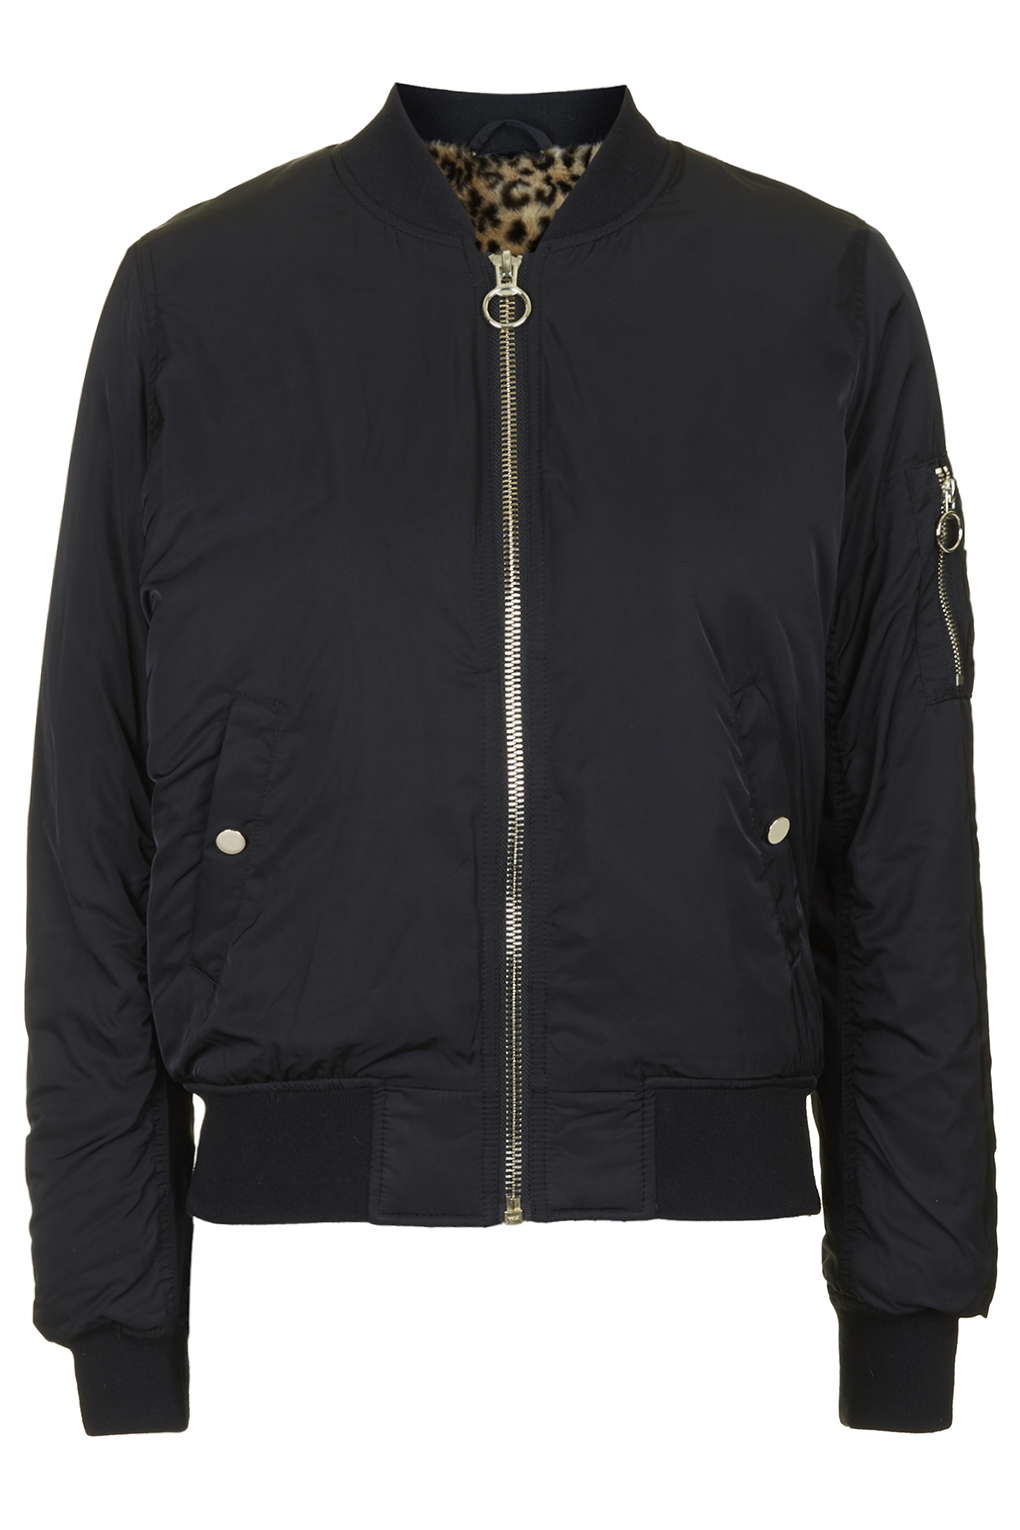 Topshop Petite Faux Fur Lined Bomber Jacket In Black Lyst